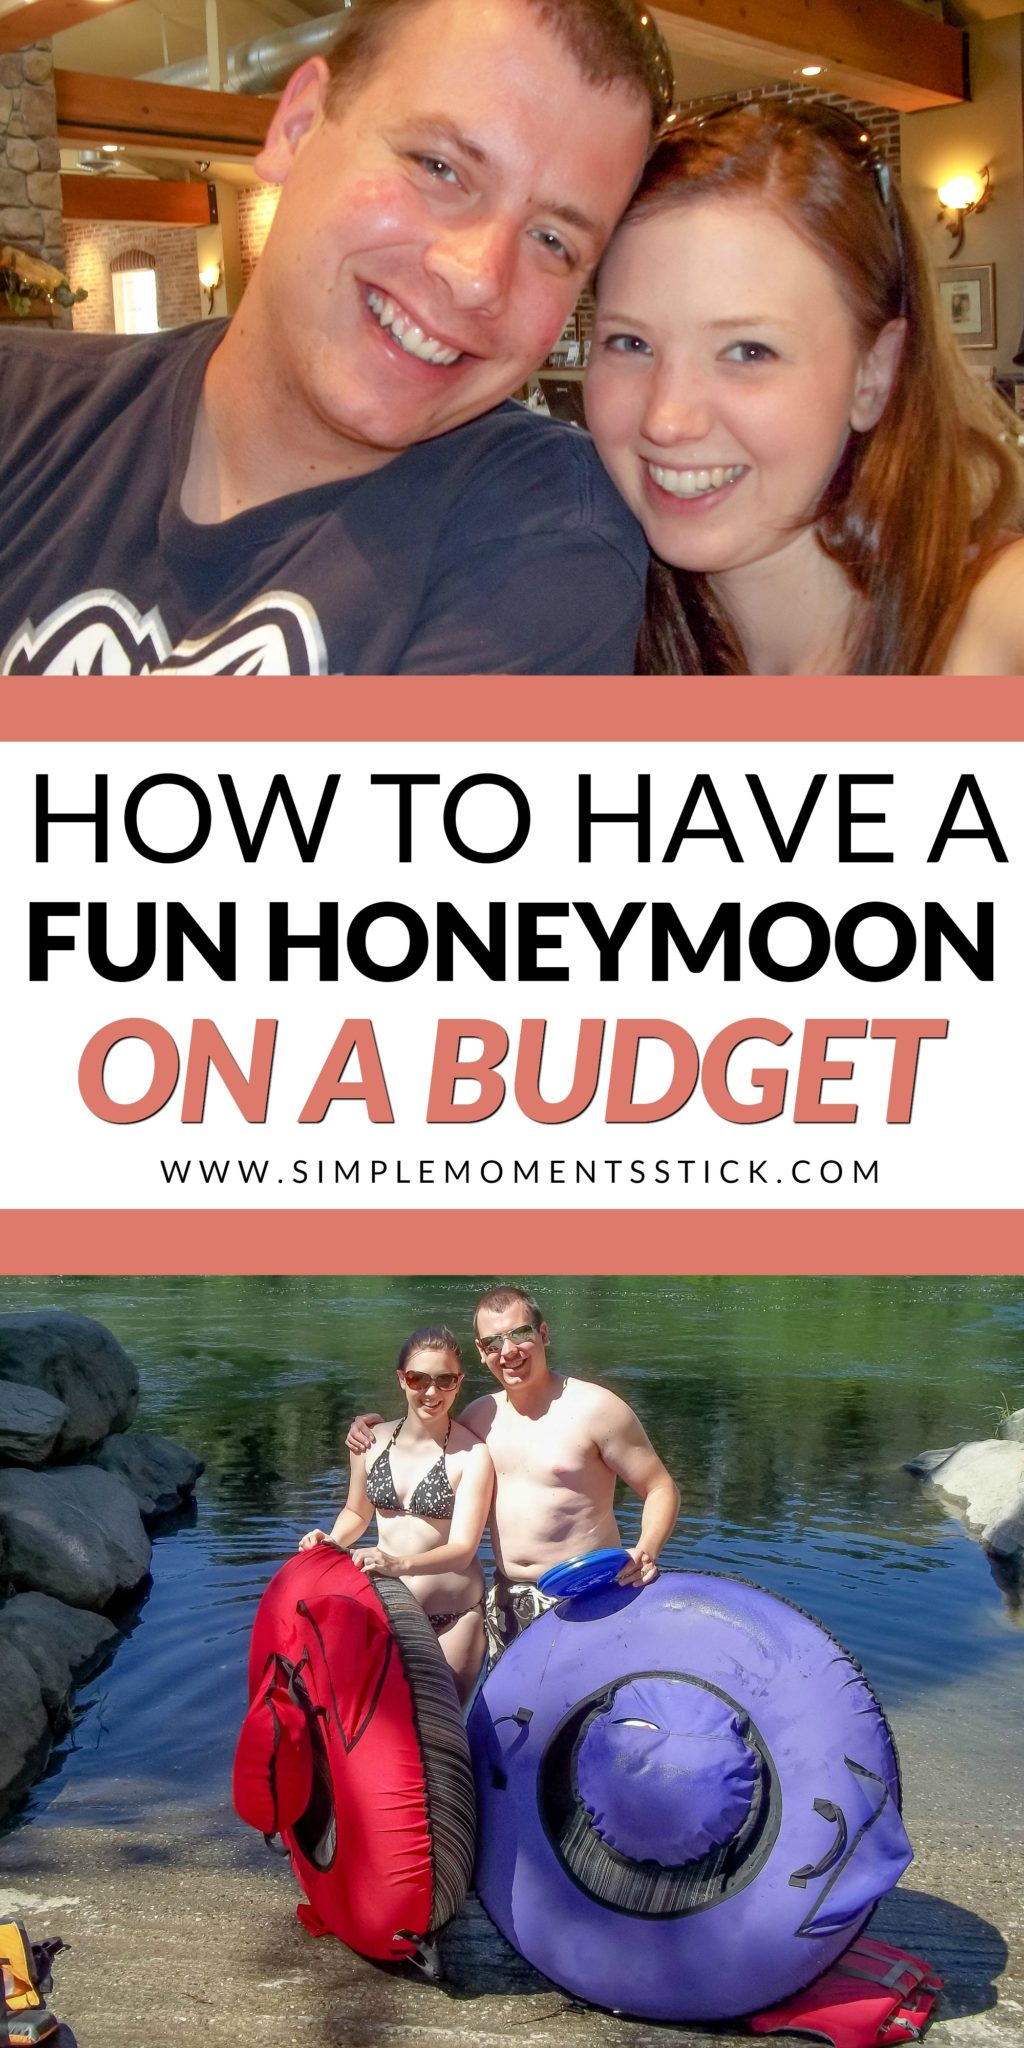 Some fun honeymoon ideas to fit your budget!